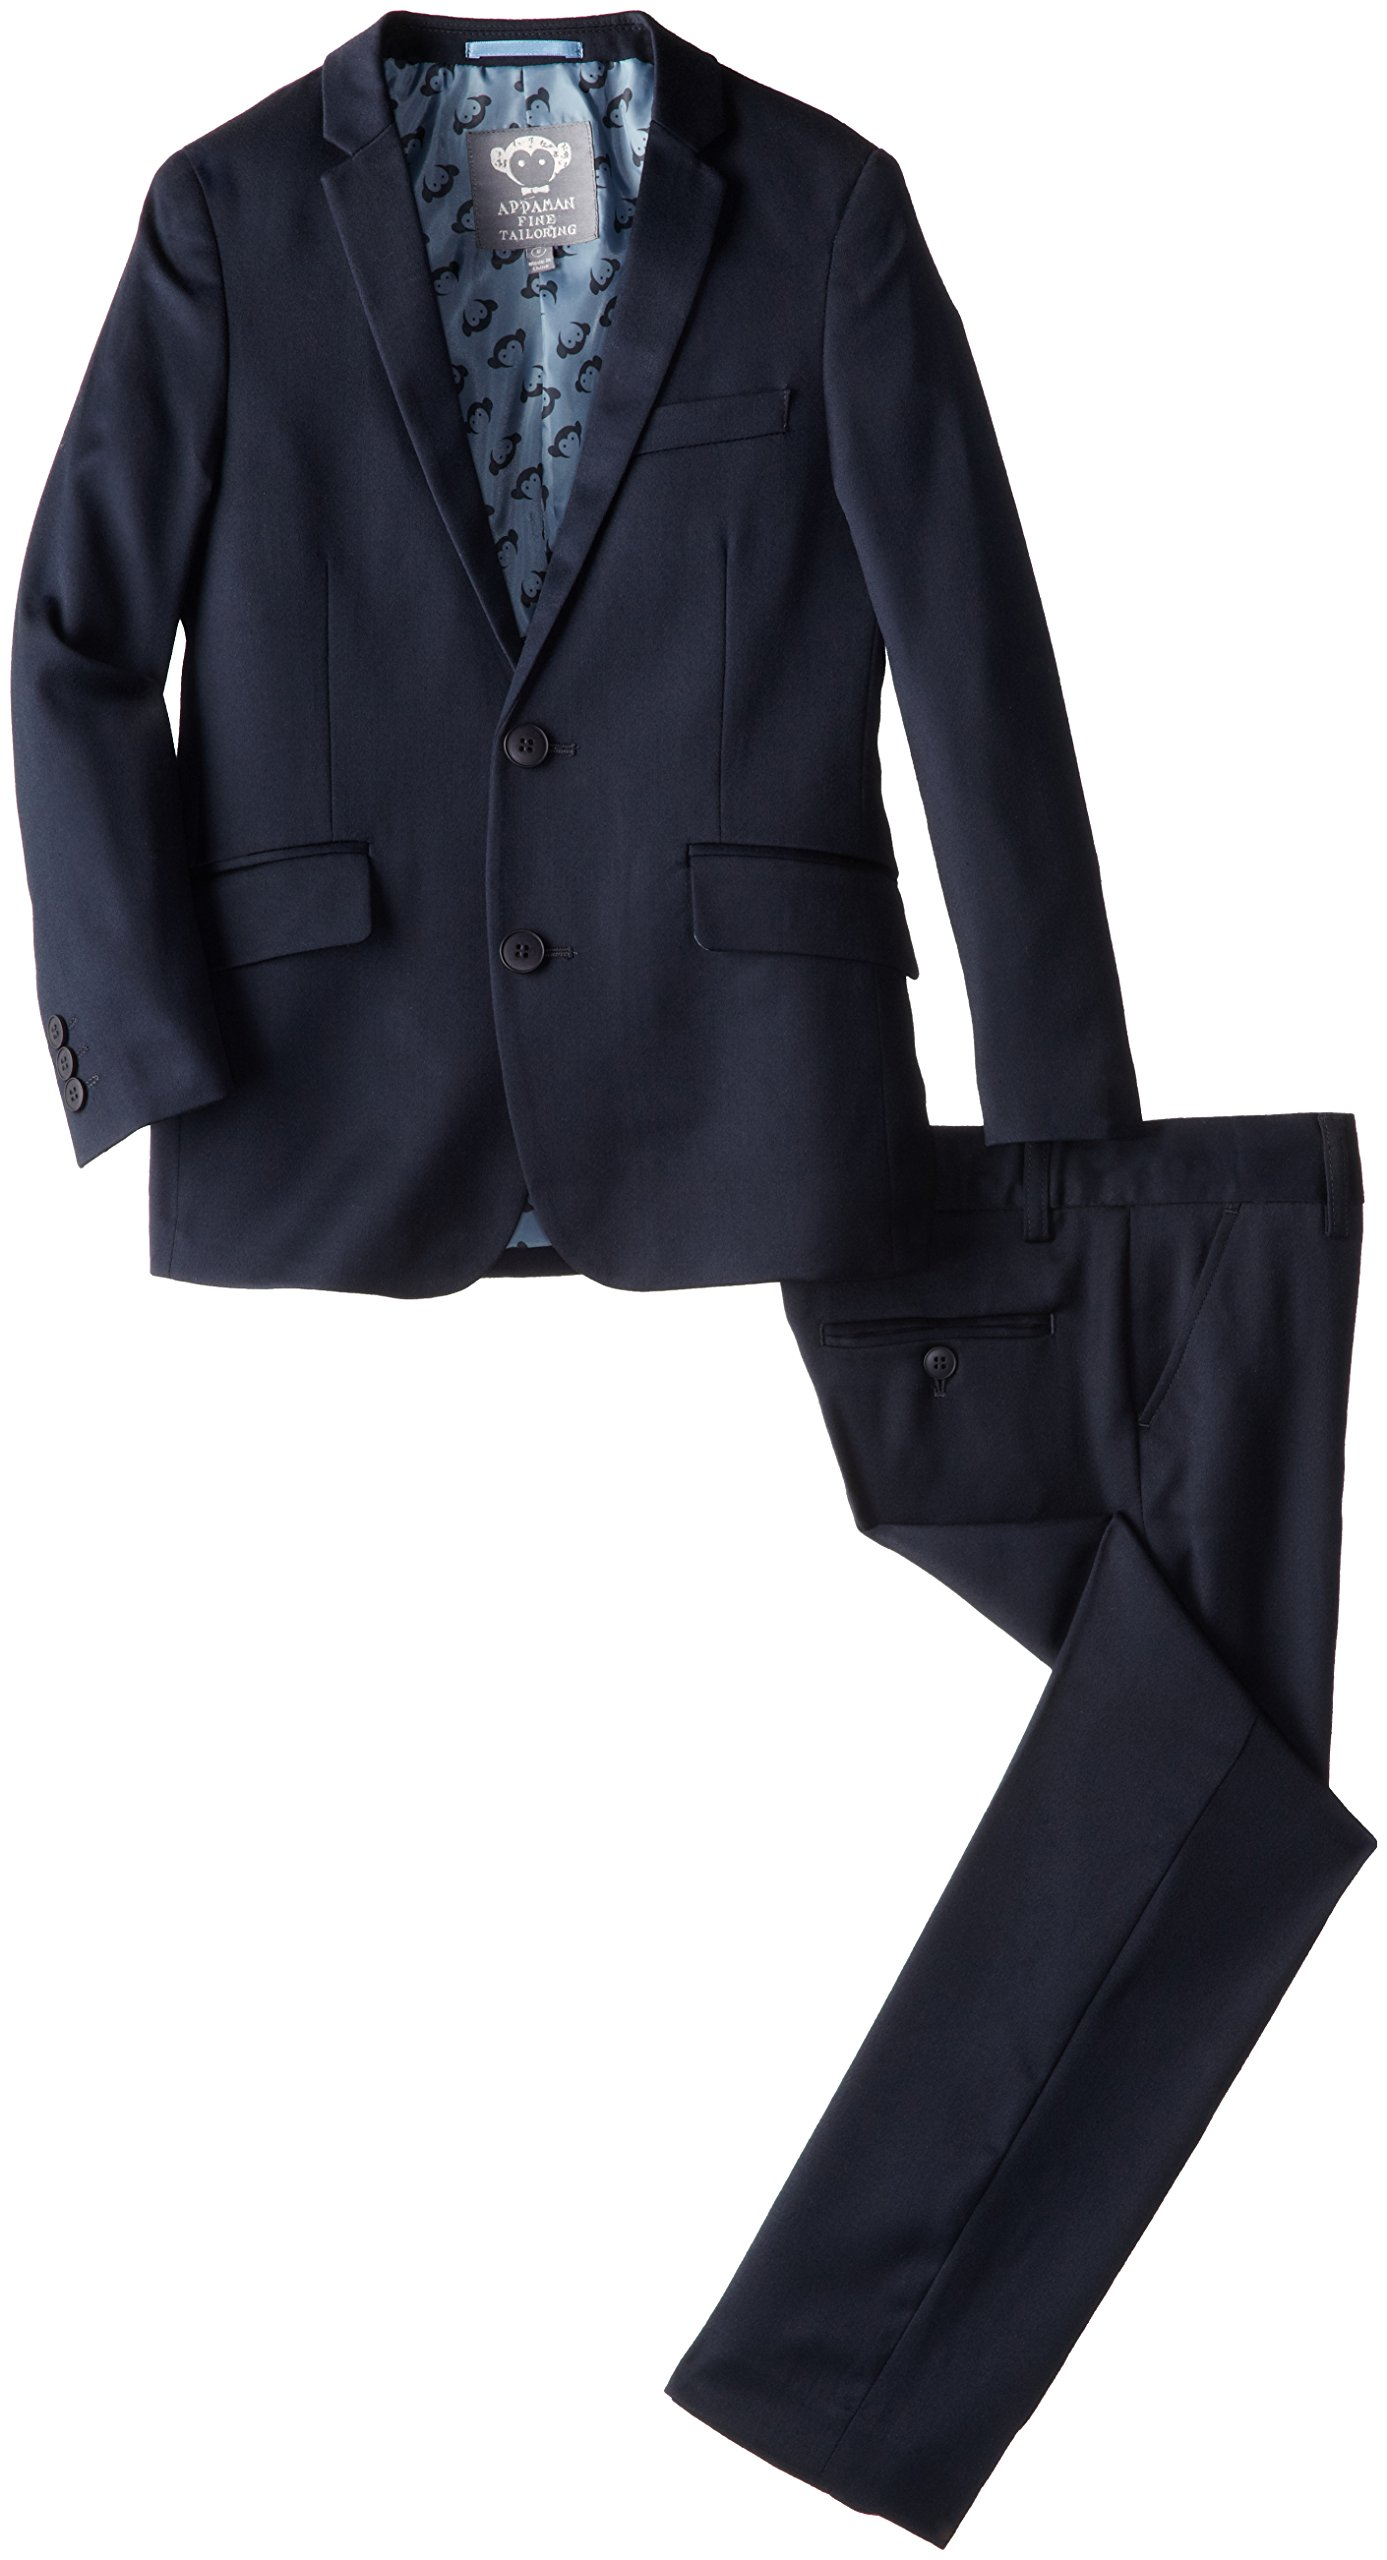 Appaman Big Boys' Two Piece Classic Mod Suit In Navy, Navy Blue, 12 by Appaman